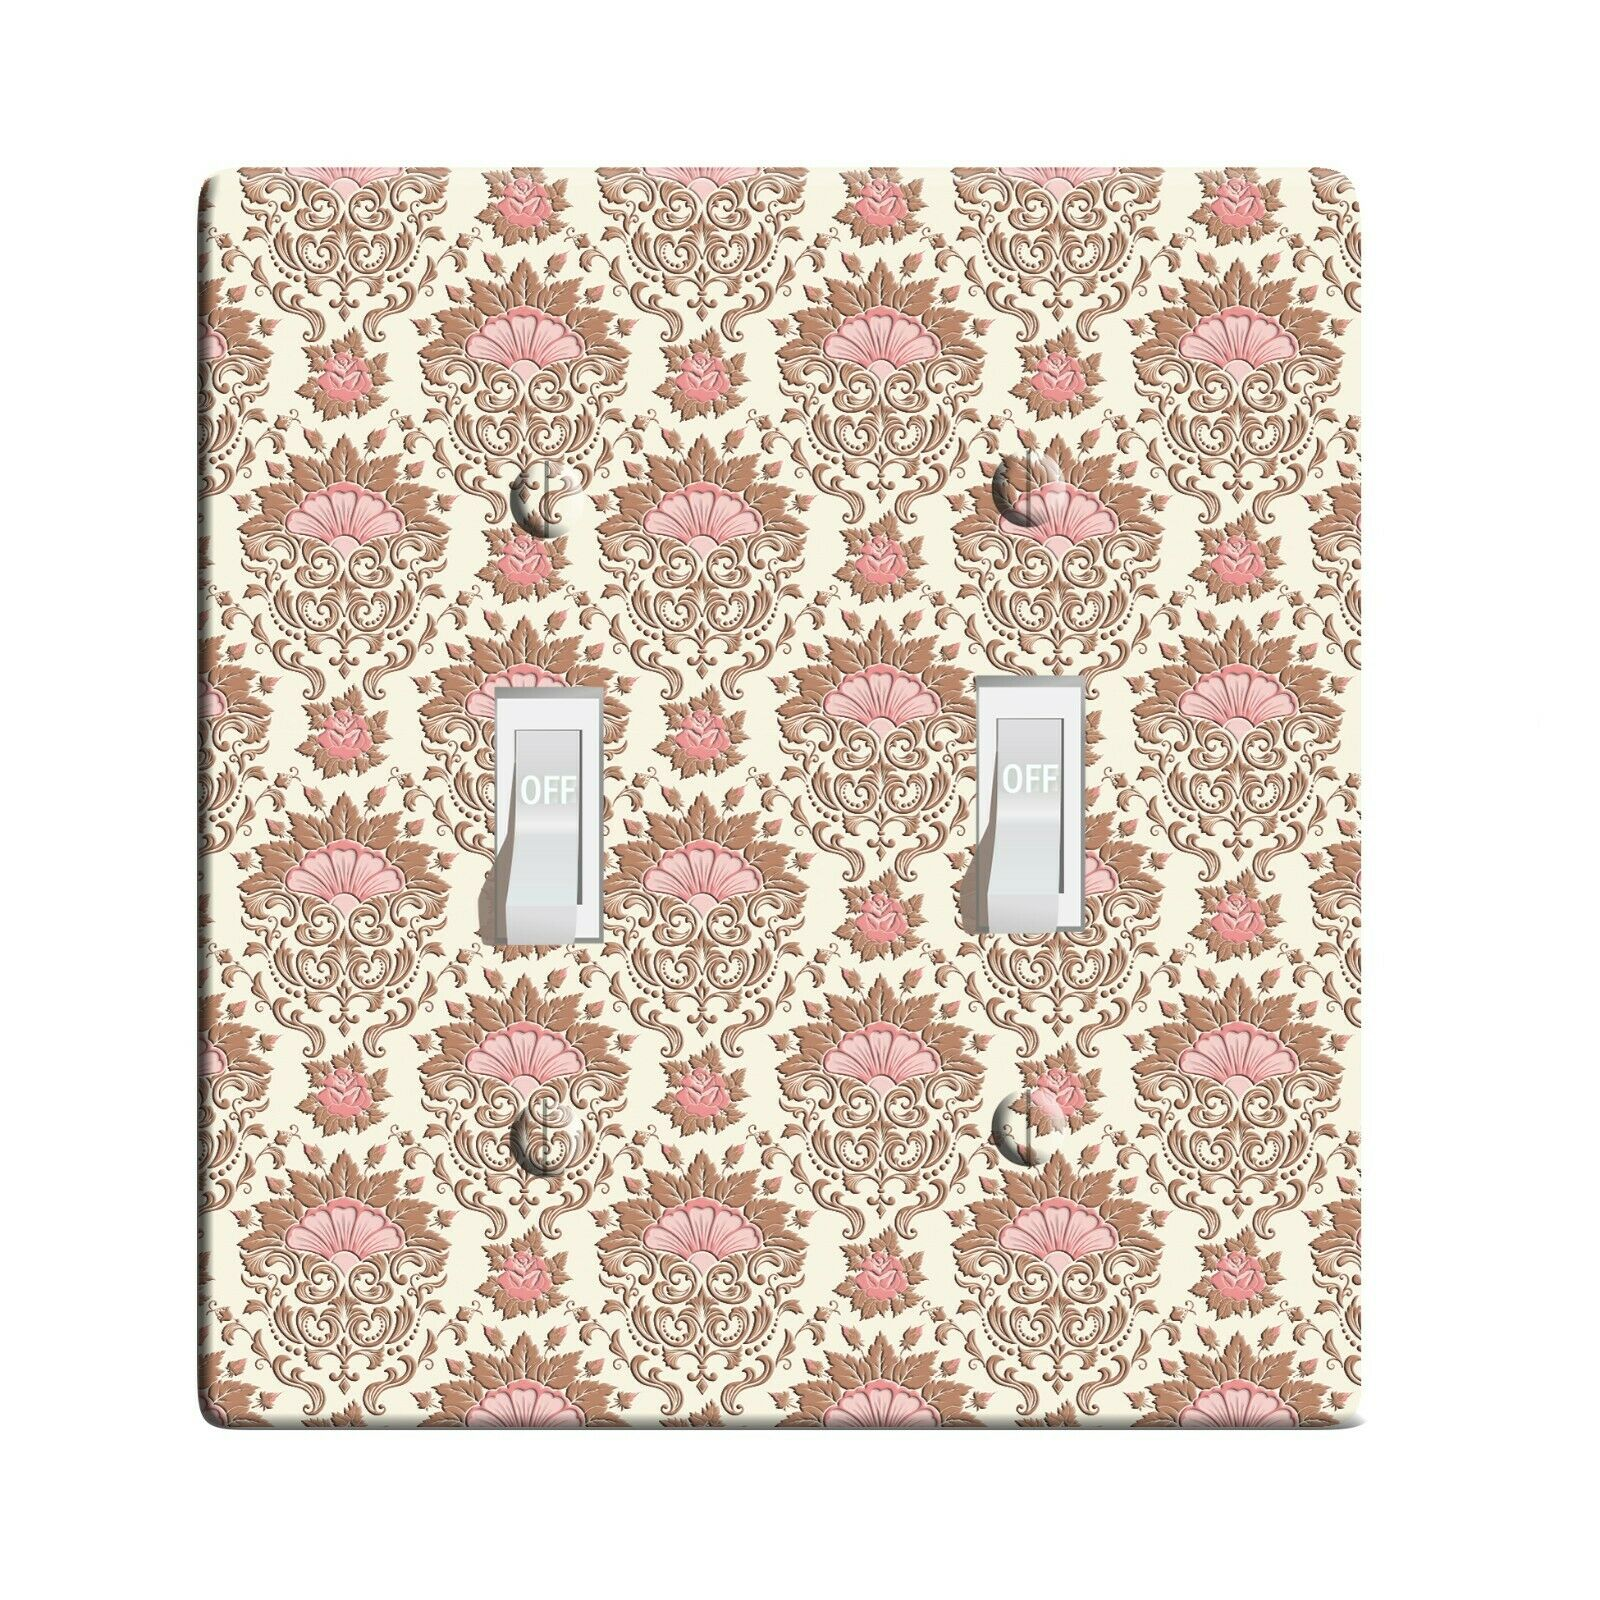 Embossi Printed Maxi Metal Rose Damask  Switch Plate Cover 0090 L